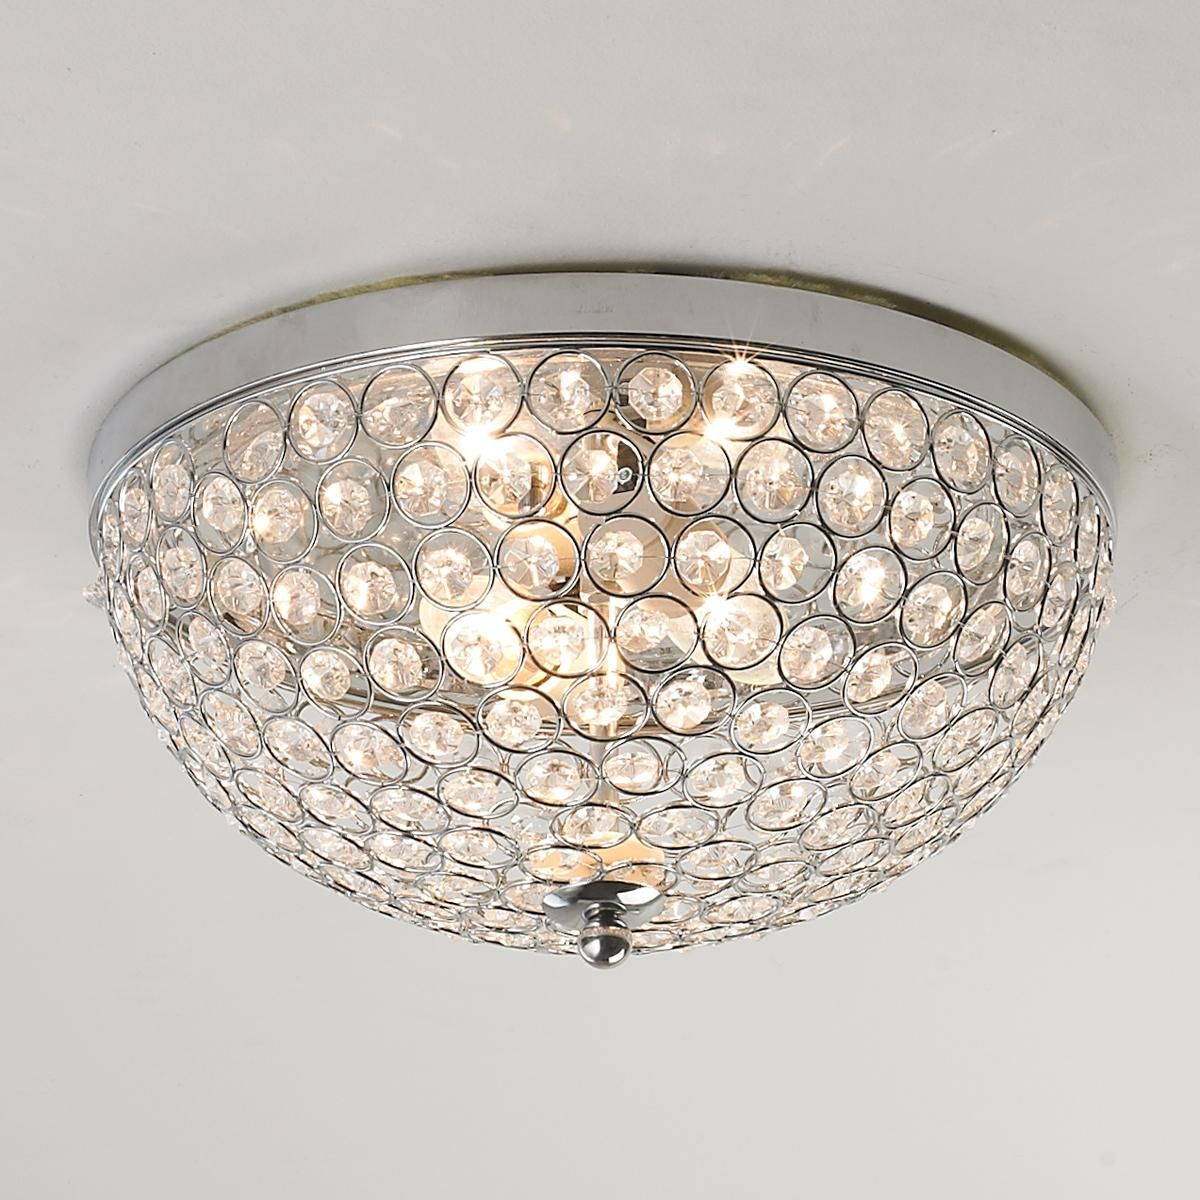 Crystal jewel ceiling light ceiling lights for 149 or - Flush mount bathroom ceiling lights ...